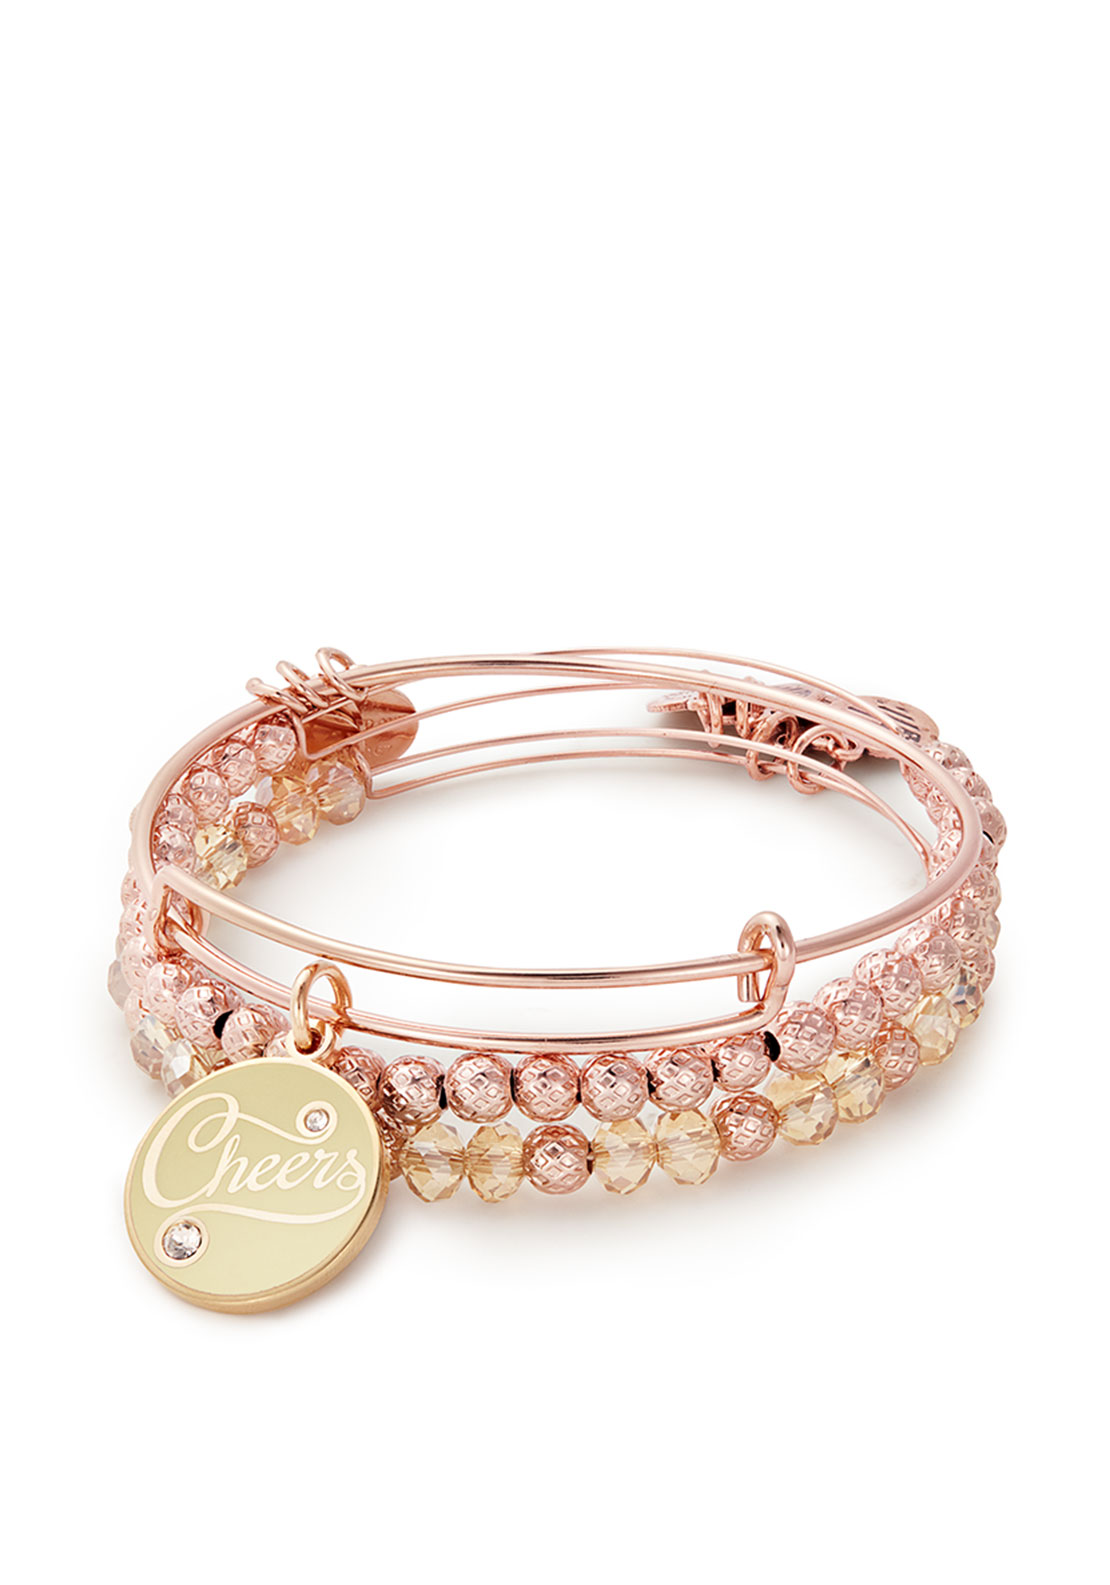 Alex and Ani Cheers Set of 3 Bracelets, Rose-Gold